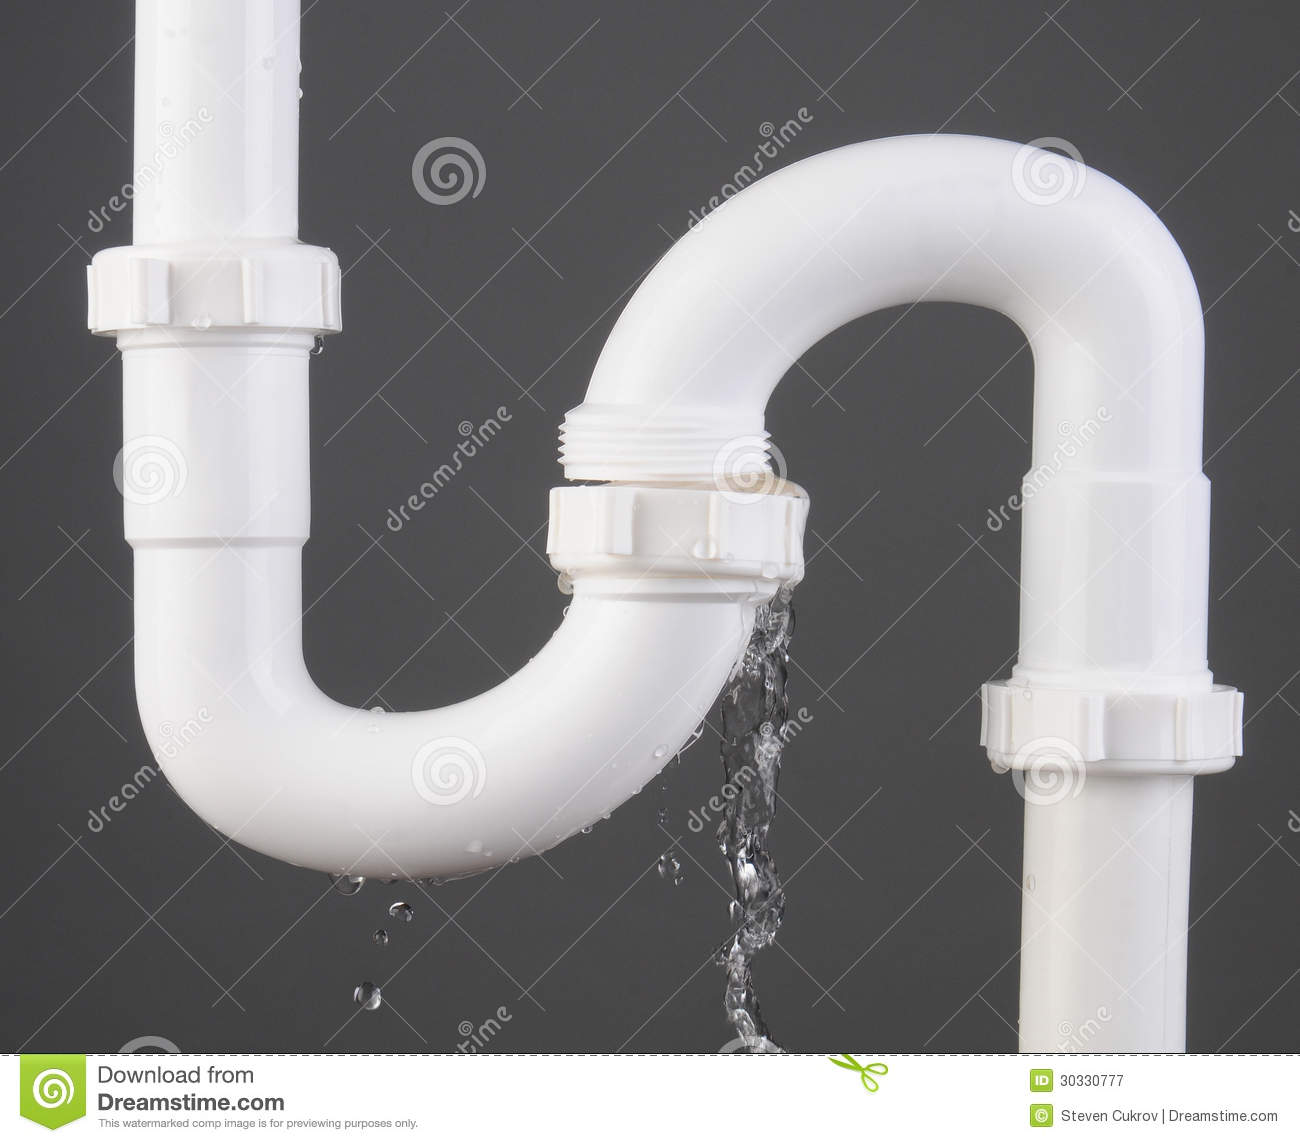 Plumbing Leak Stock Image Image Of Plastic Close Repair